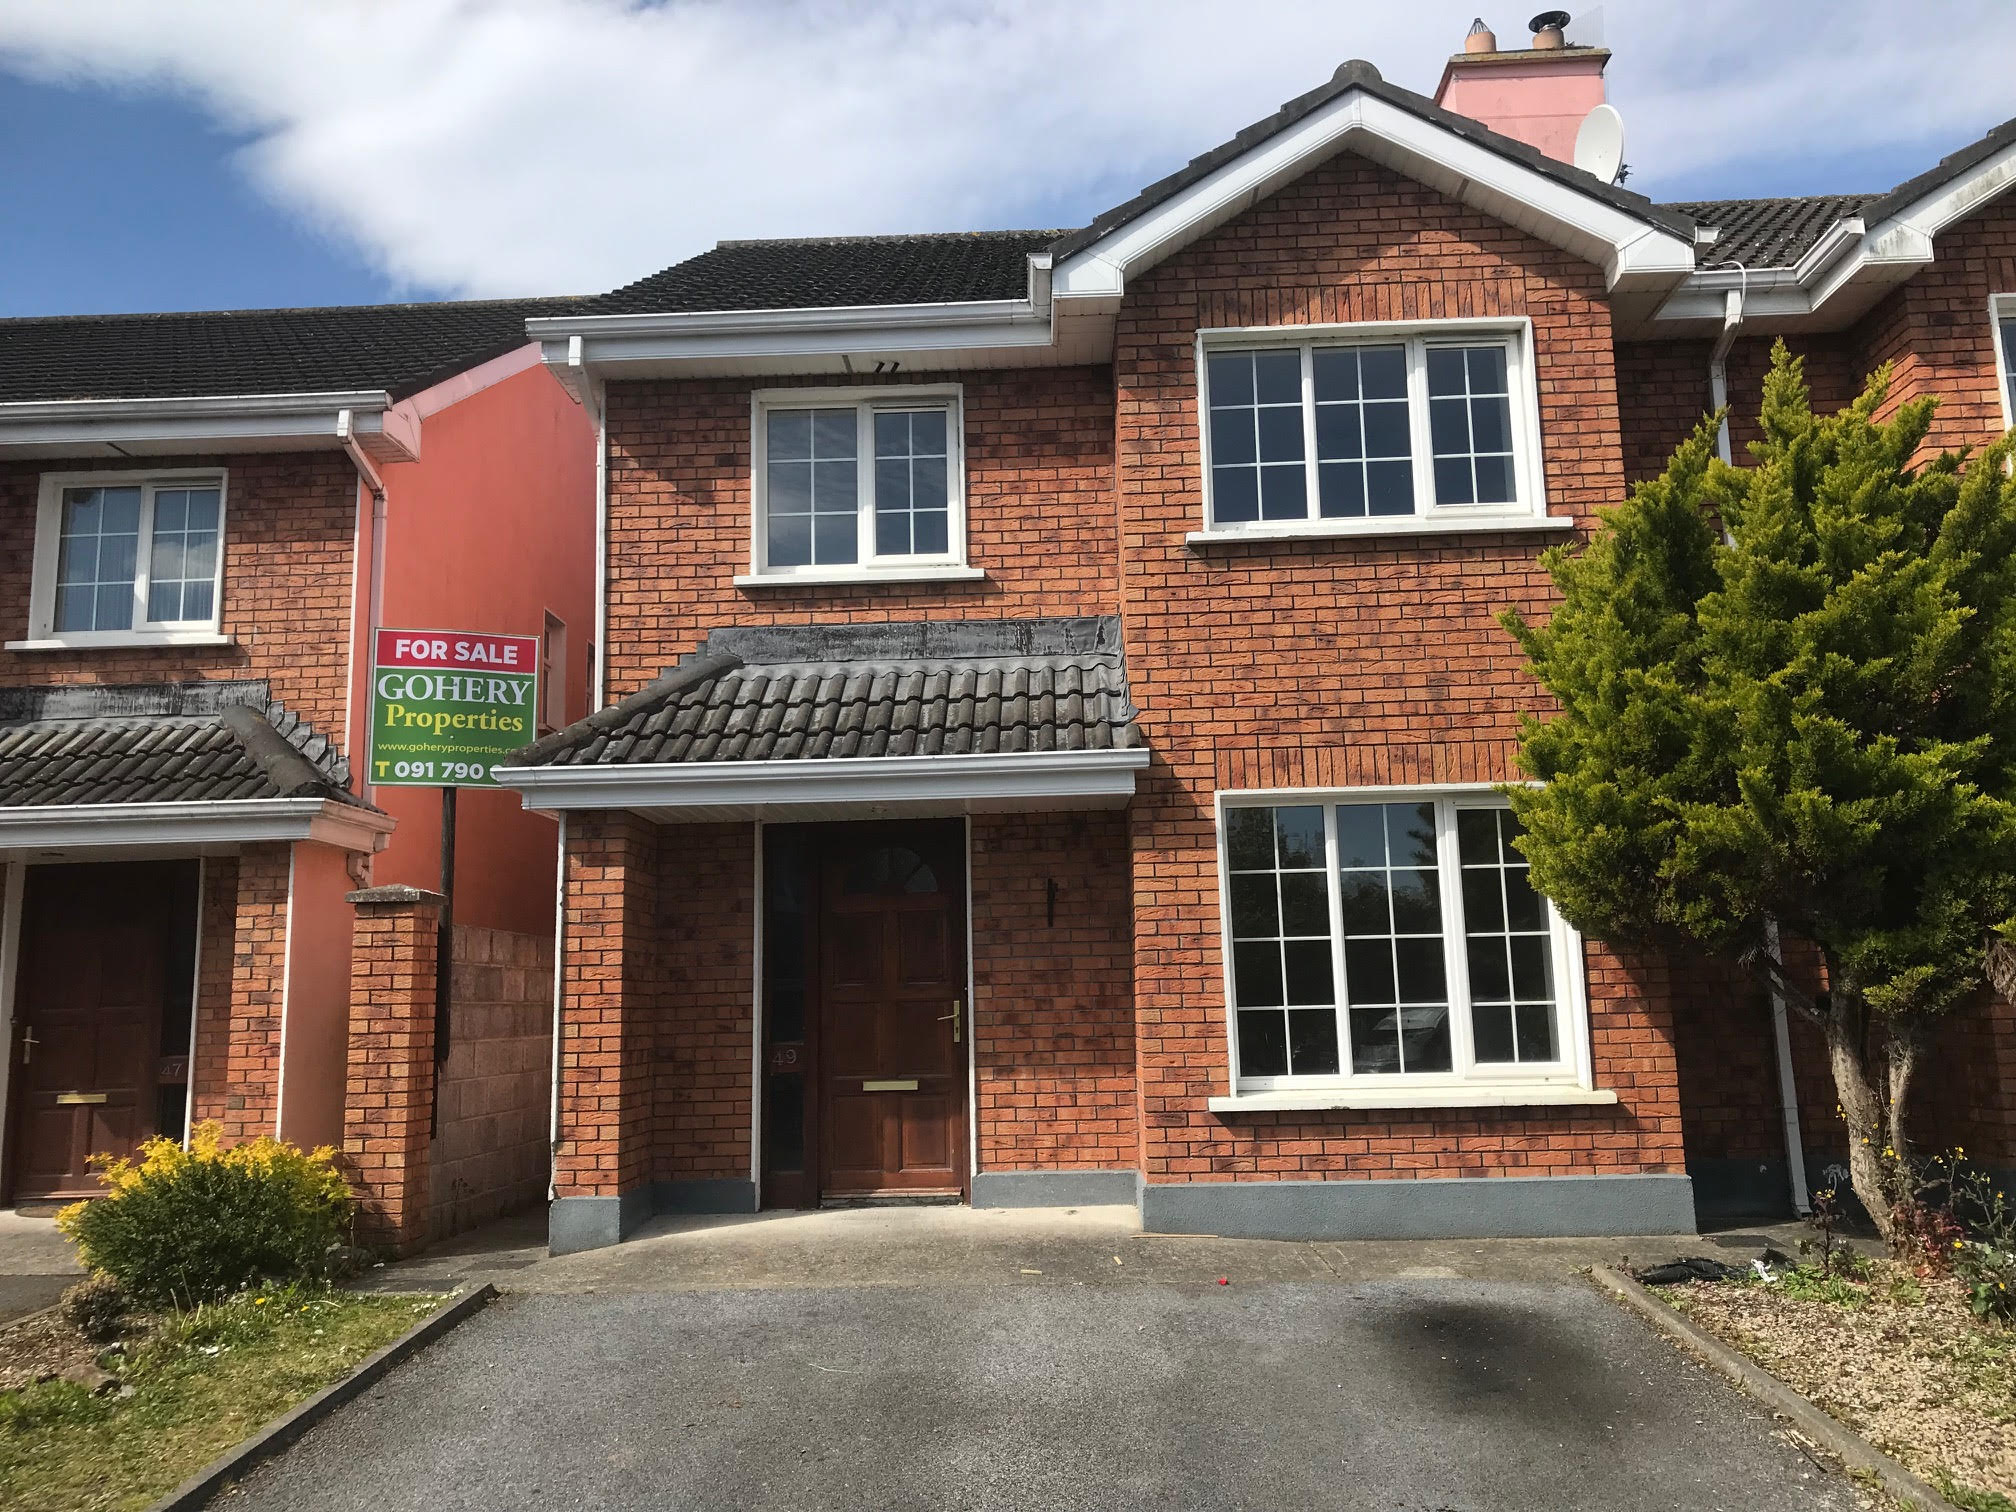 49 Bluebell Woods, Oranmore, Co. Galway